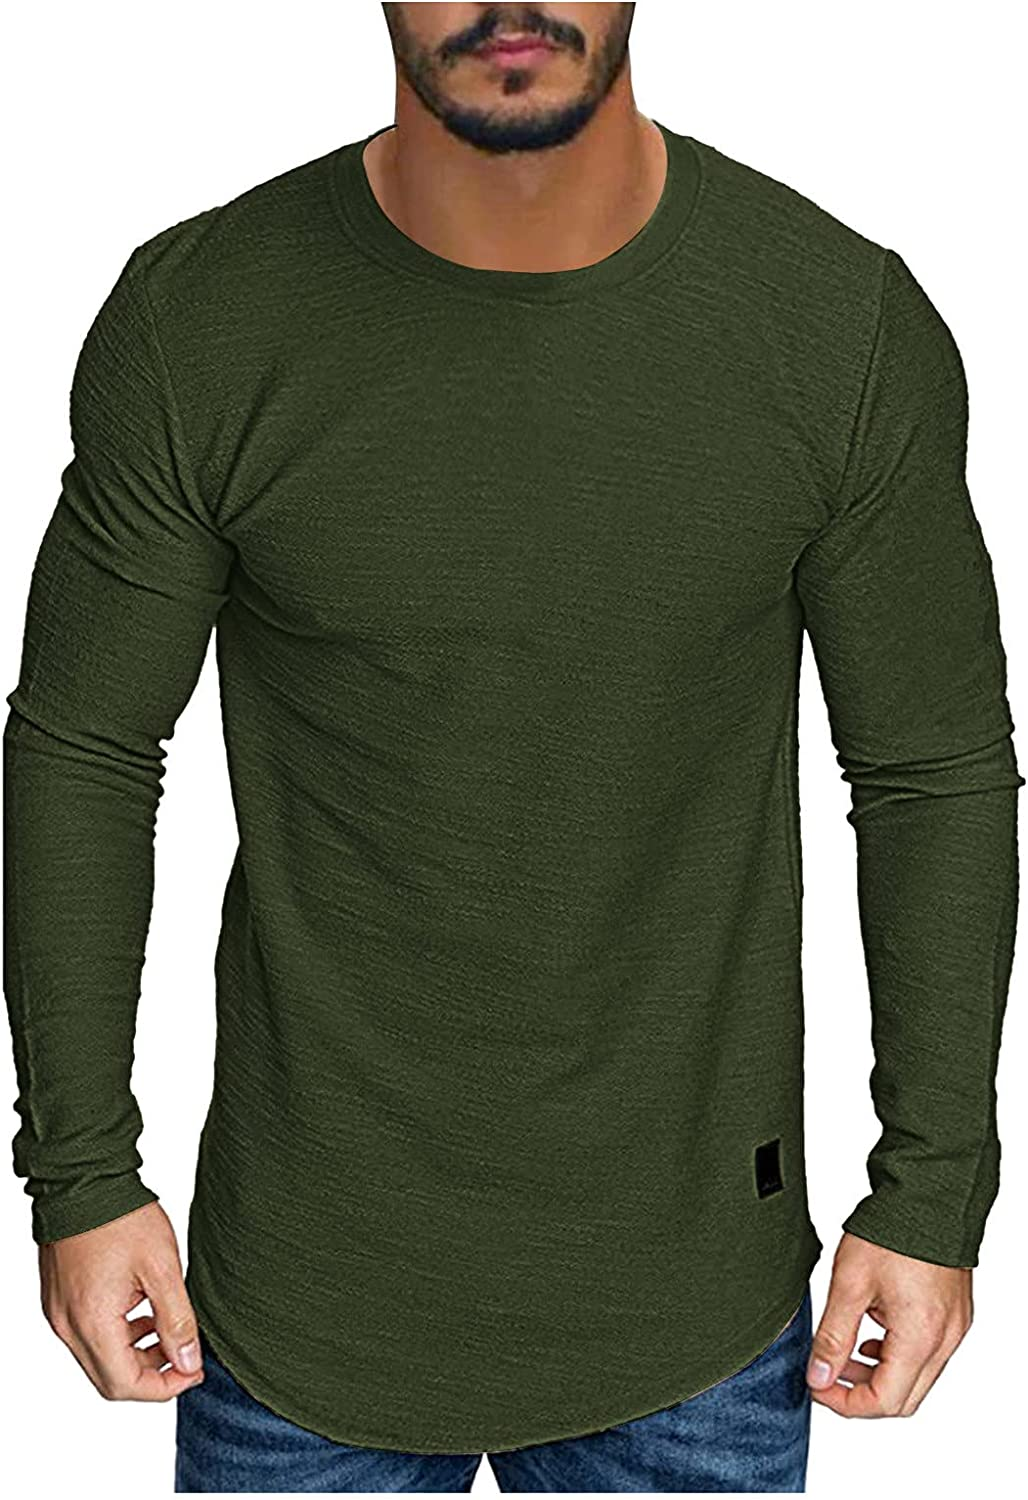 Mens T Shirts Casual Athletic Long Sleeve Shirt Muscle Gym Workout Yoga Tops Slim Fit Basic Top Tees Comfy T-Shirts